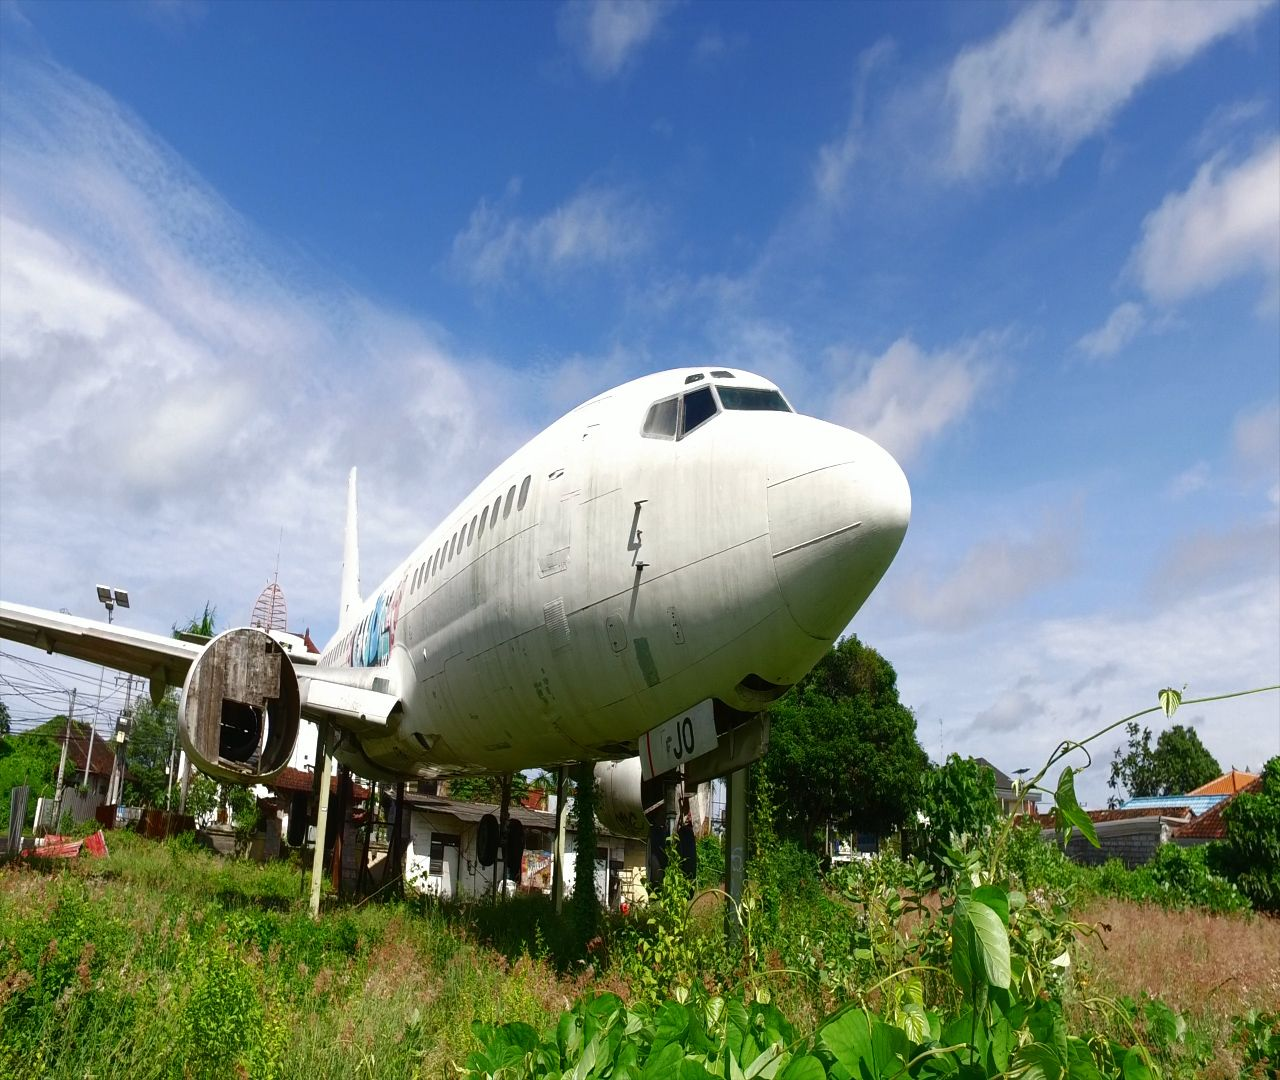 Abandoned Plane In Bali, Indonesia? The Last Thing You